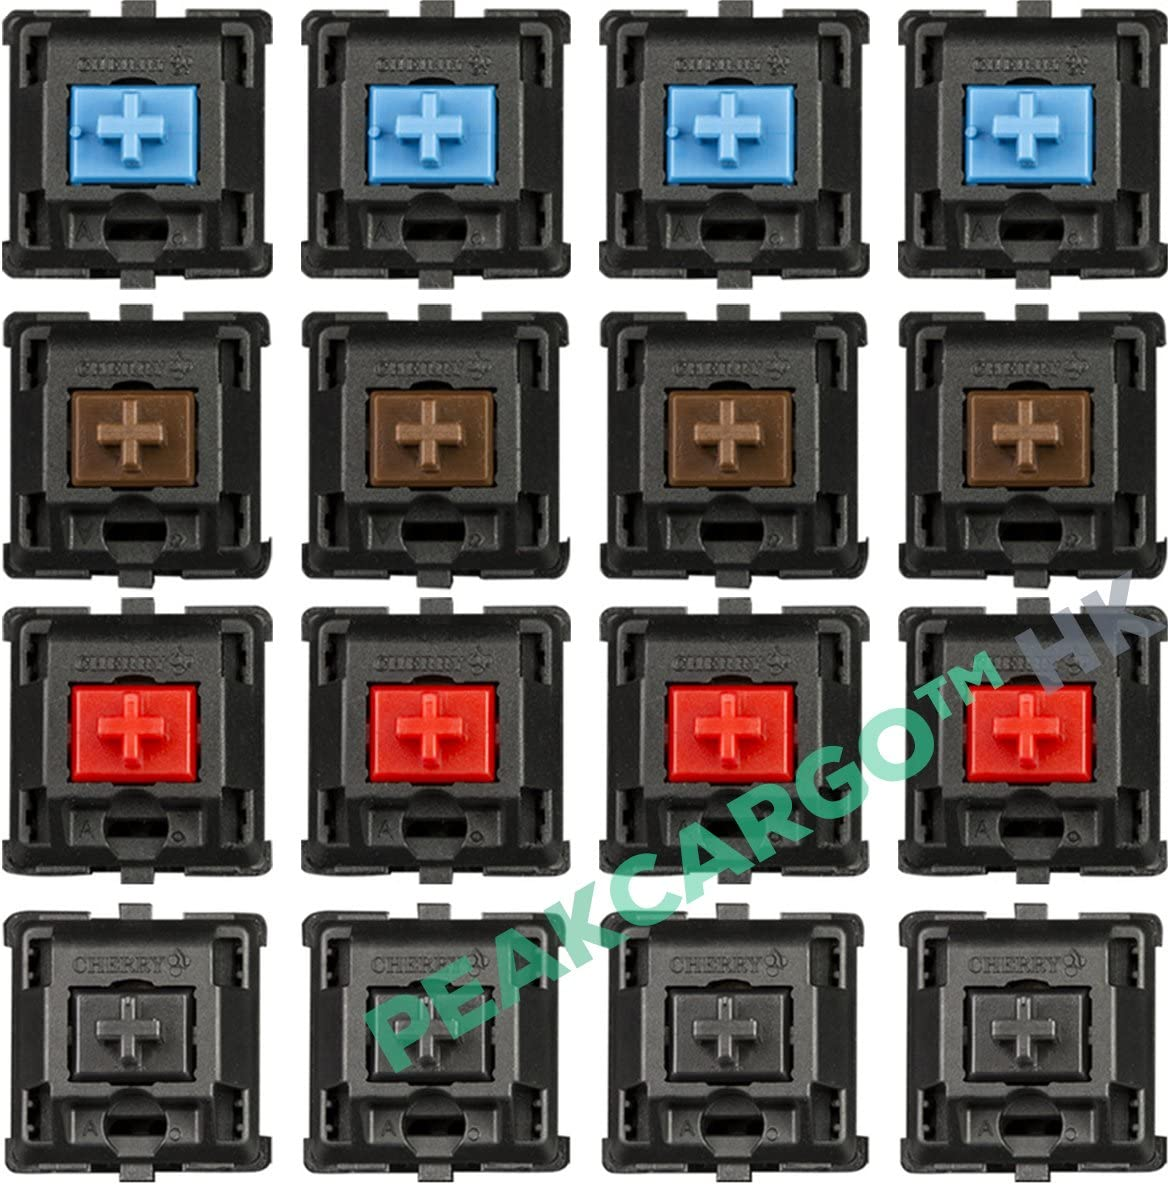 12 PACK CHERRY MX Red Mechanical Keyboard Switches Microswitch Keyswitches